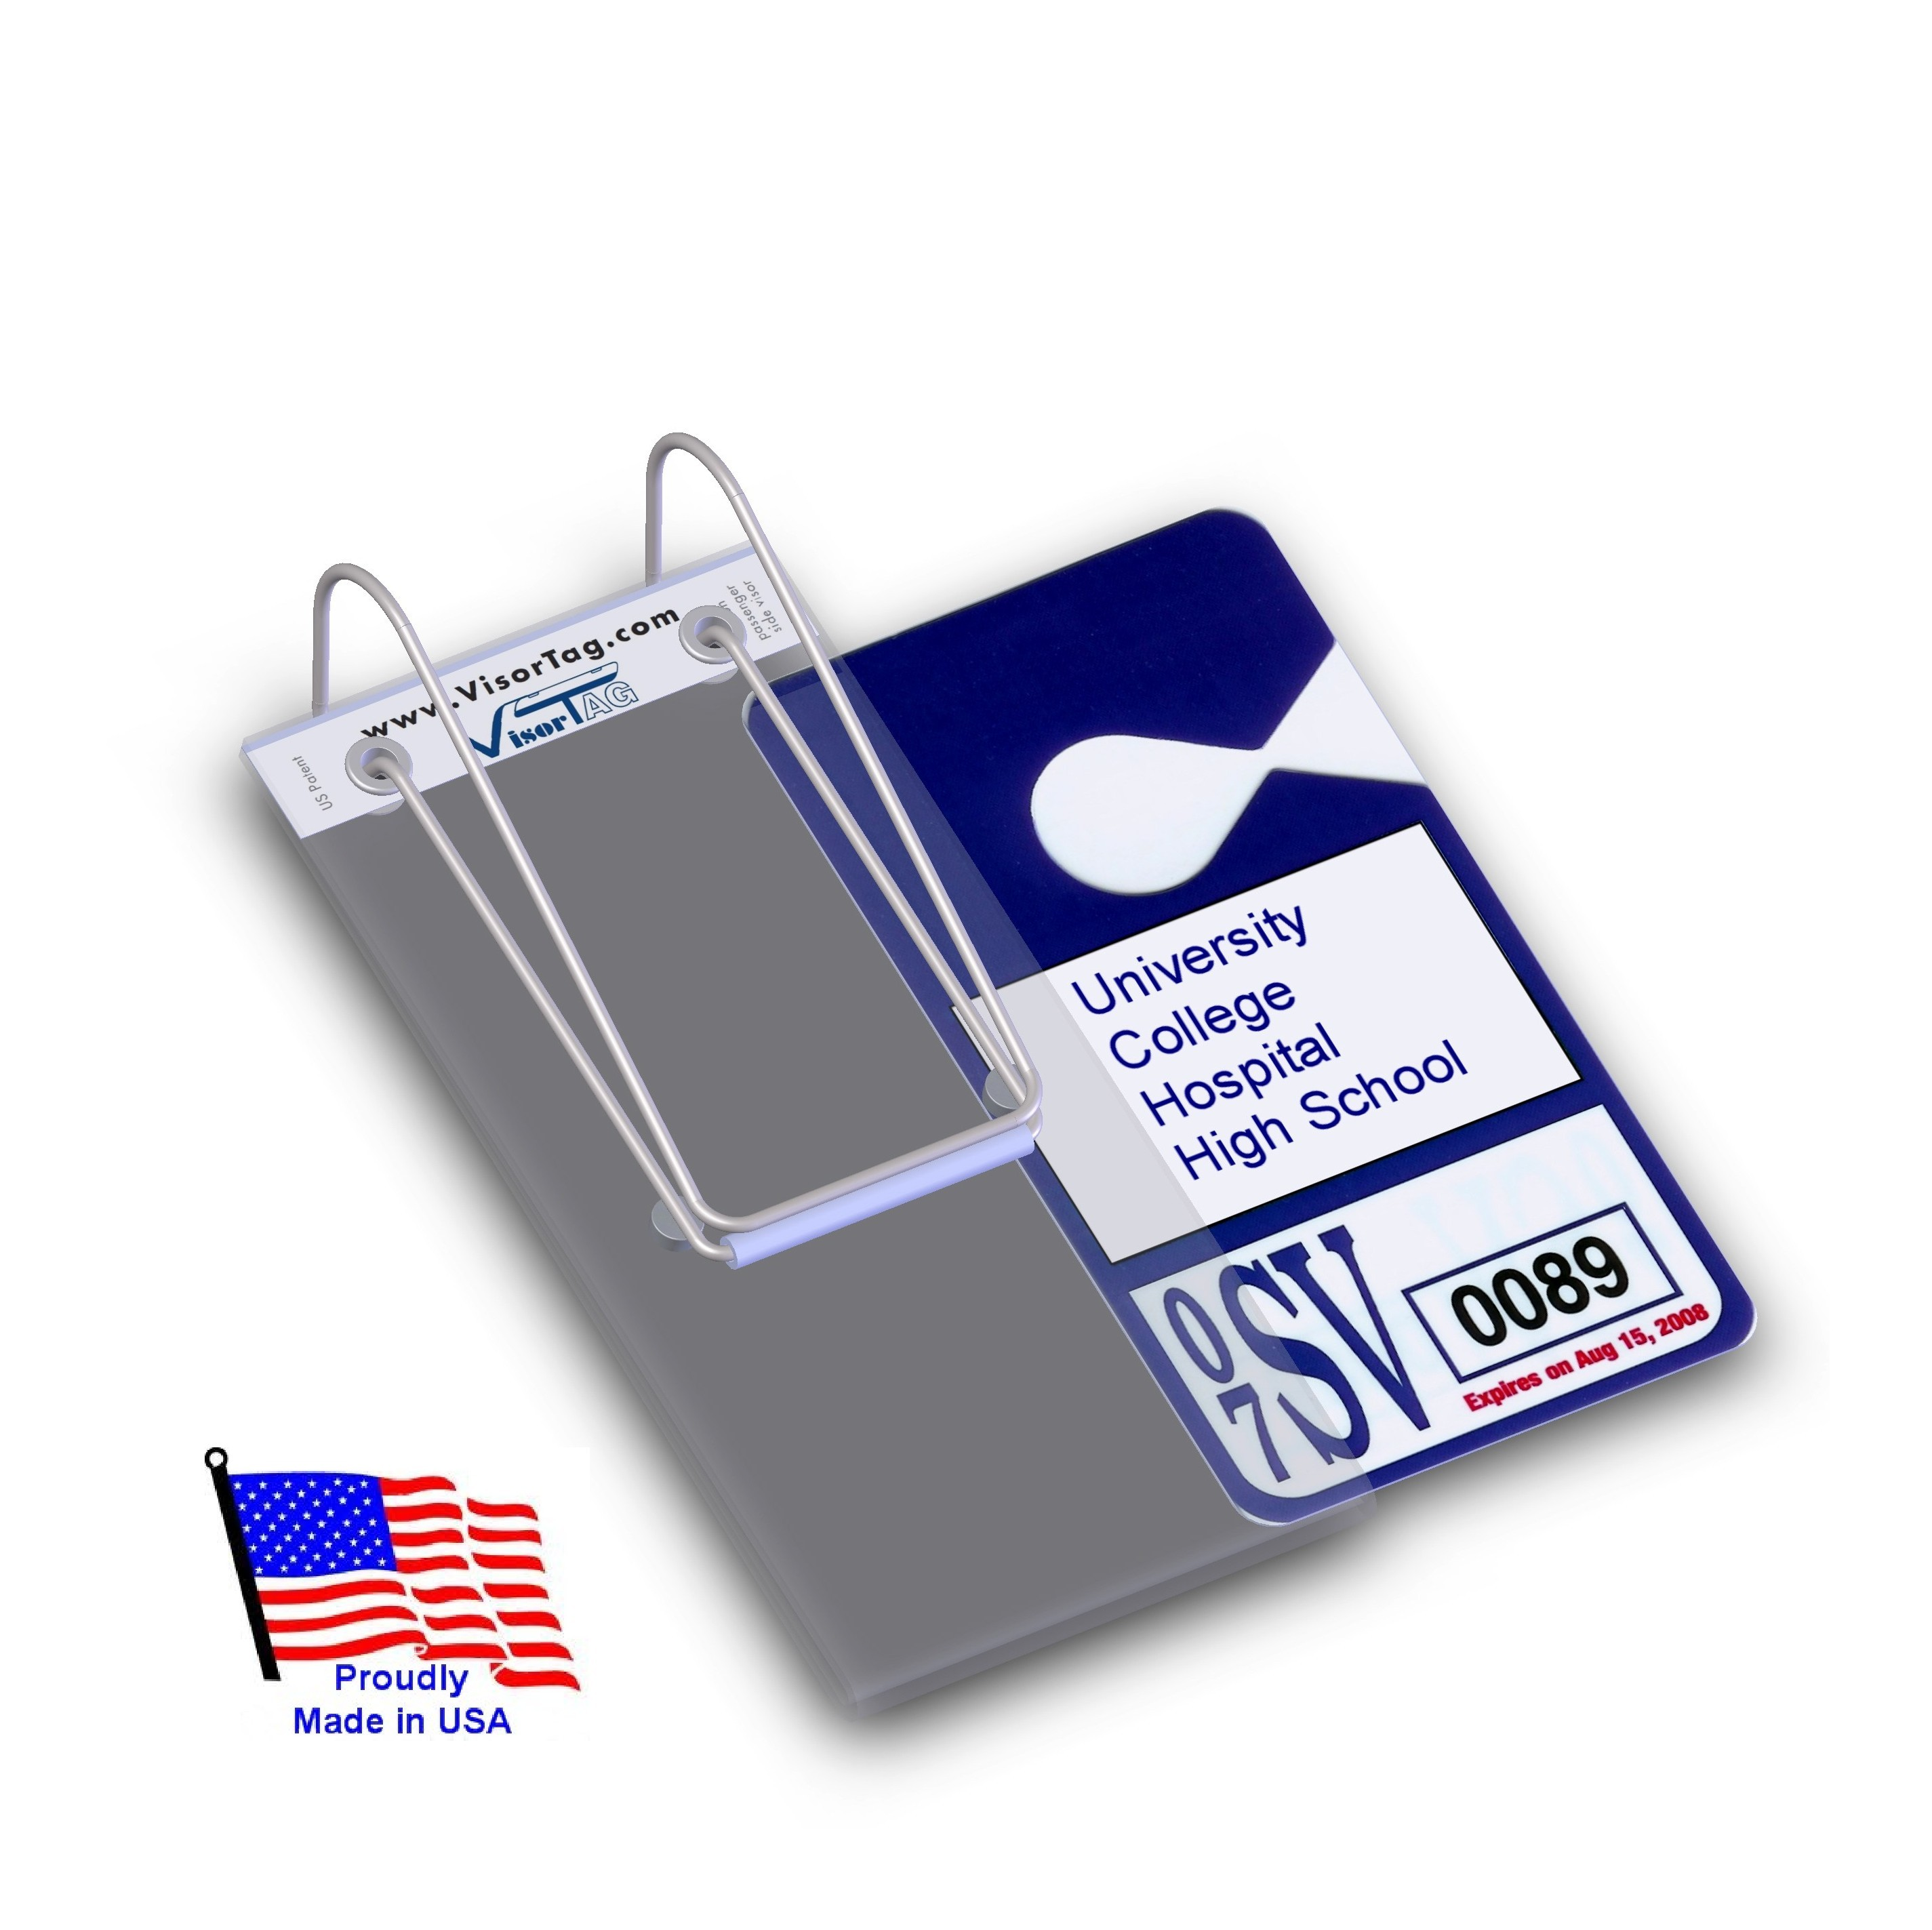 VisorTag®   Parking Permit Tag Holder for College, Hospital, High School, Train Pass, Season Pass & more